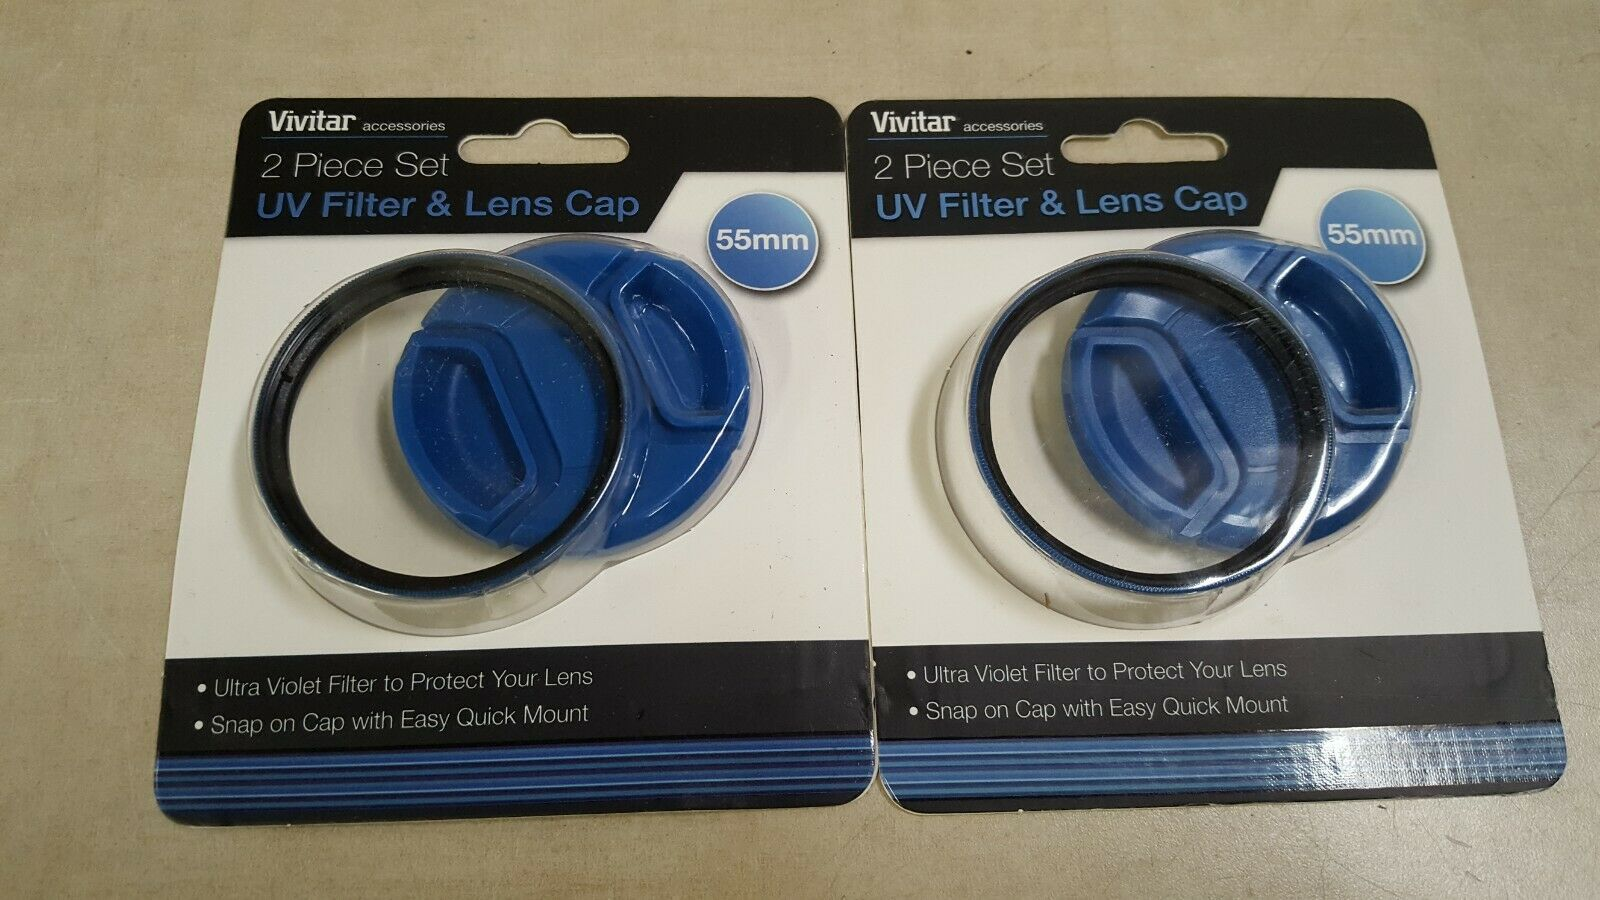 Vivitar 55mm UV Filter and Snap-On Lens Cap, Blue #VIV-FKSC-55-BL - $15.36